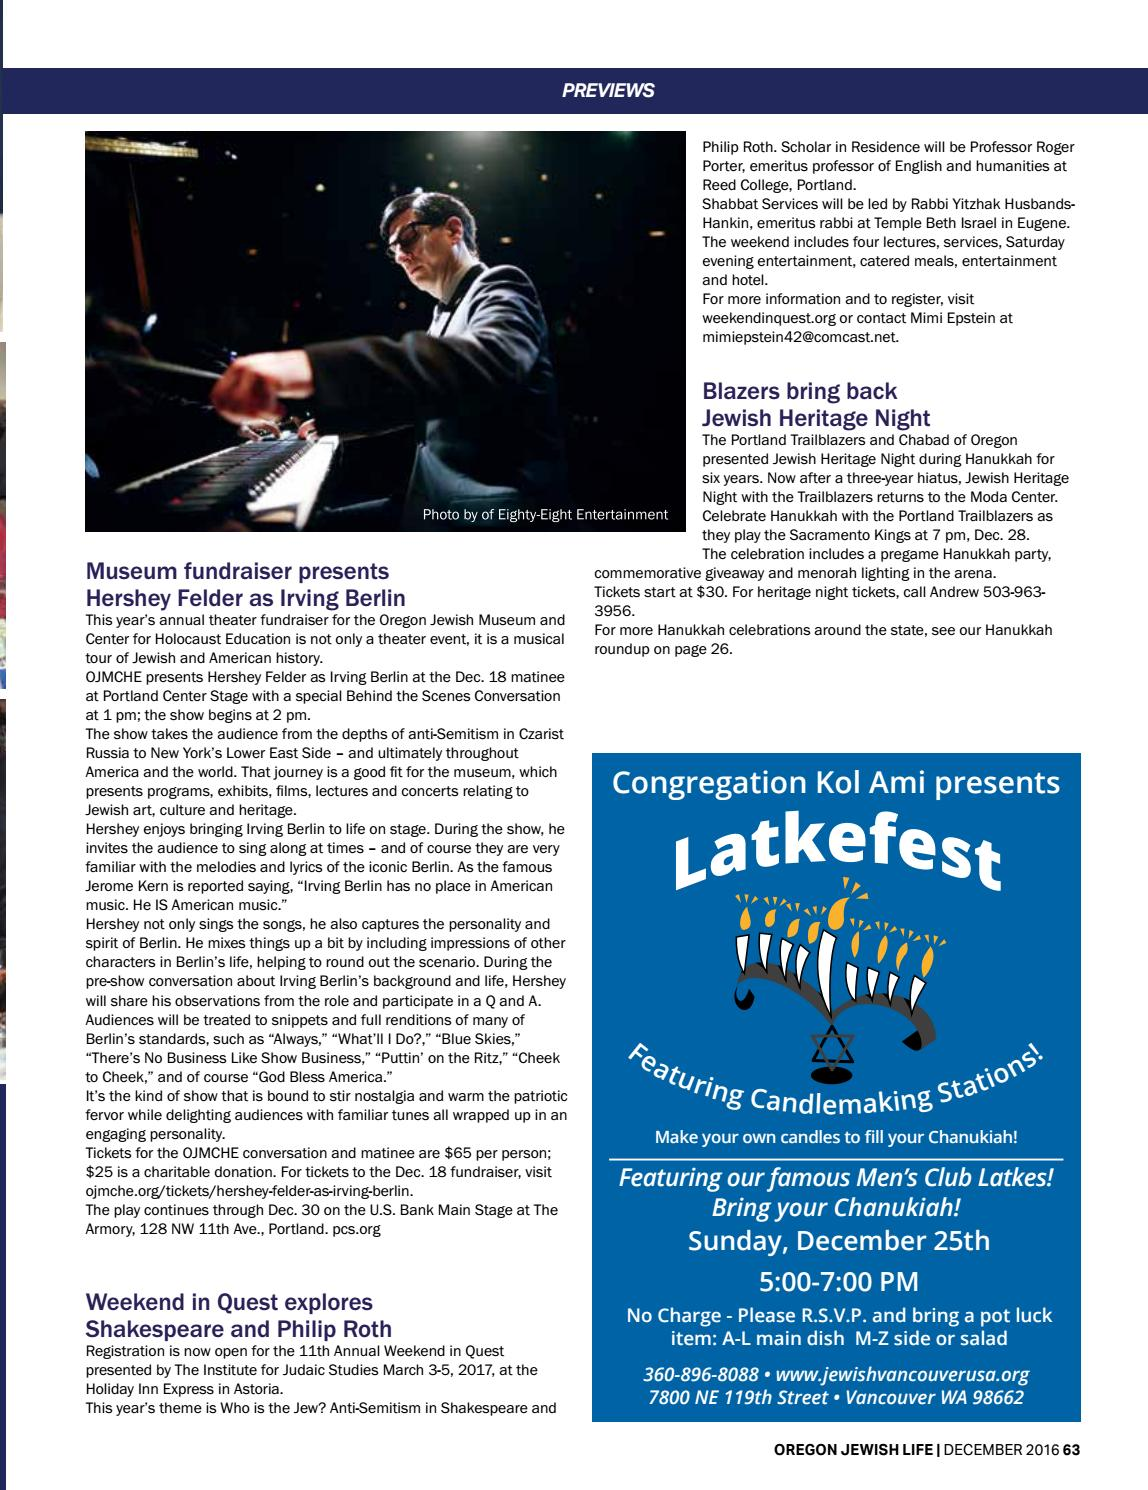 Oregon Jewish Life December 2016 Vol 5/Issue 10 by